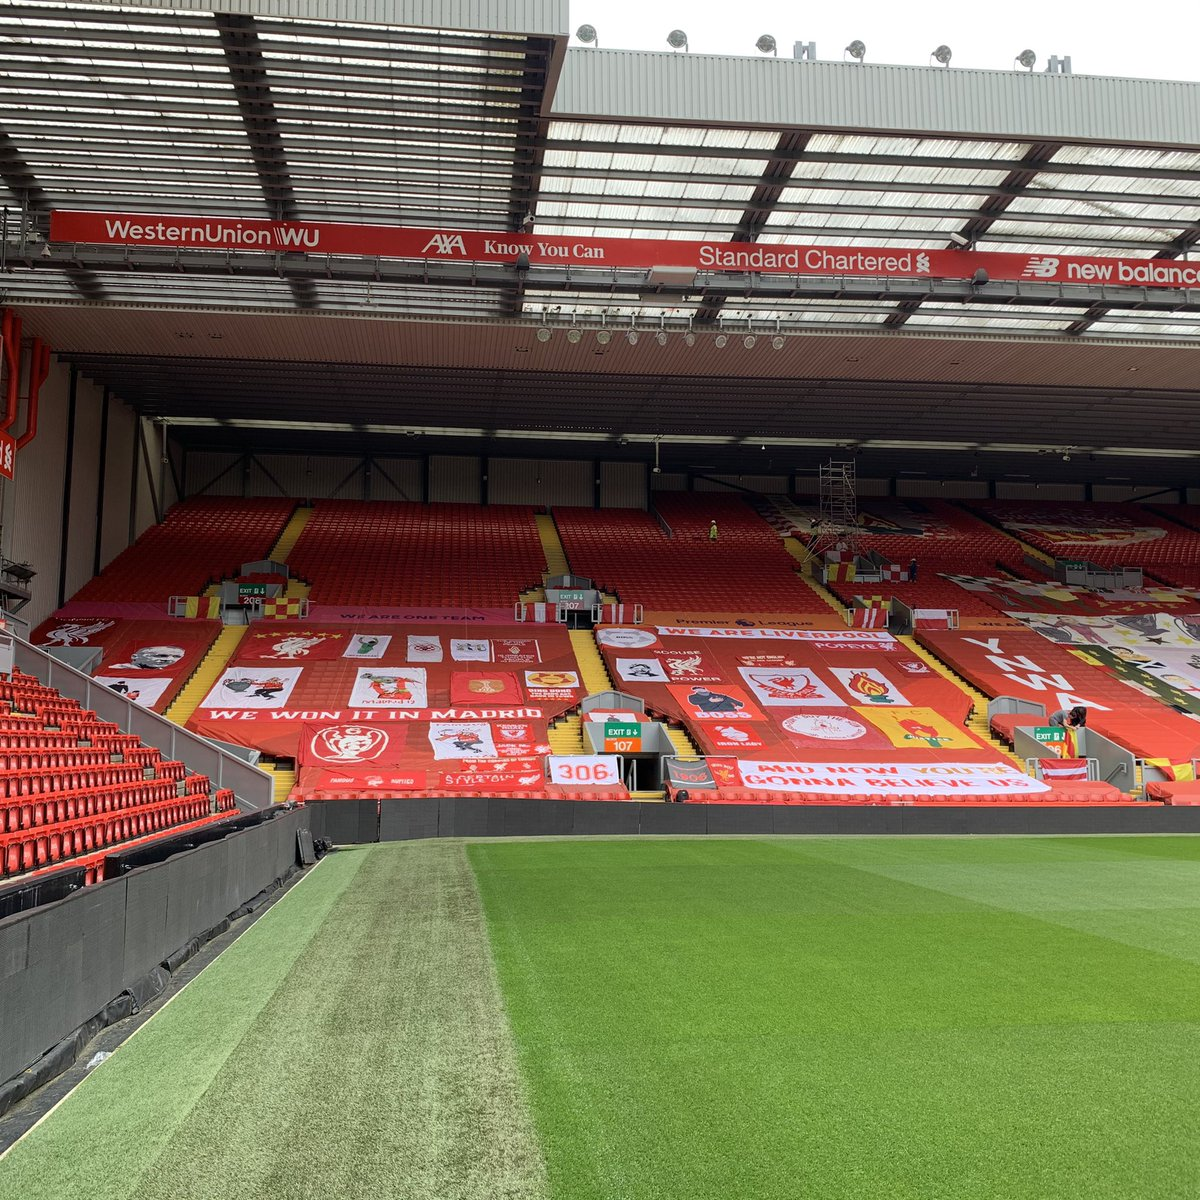 We've been at Anfield today getting The Kop ready for Wednesday.  https://t.co/TtdMDSCvkc https://t.co/U2m9HCHo86